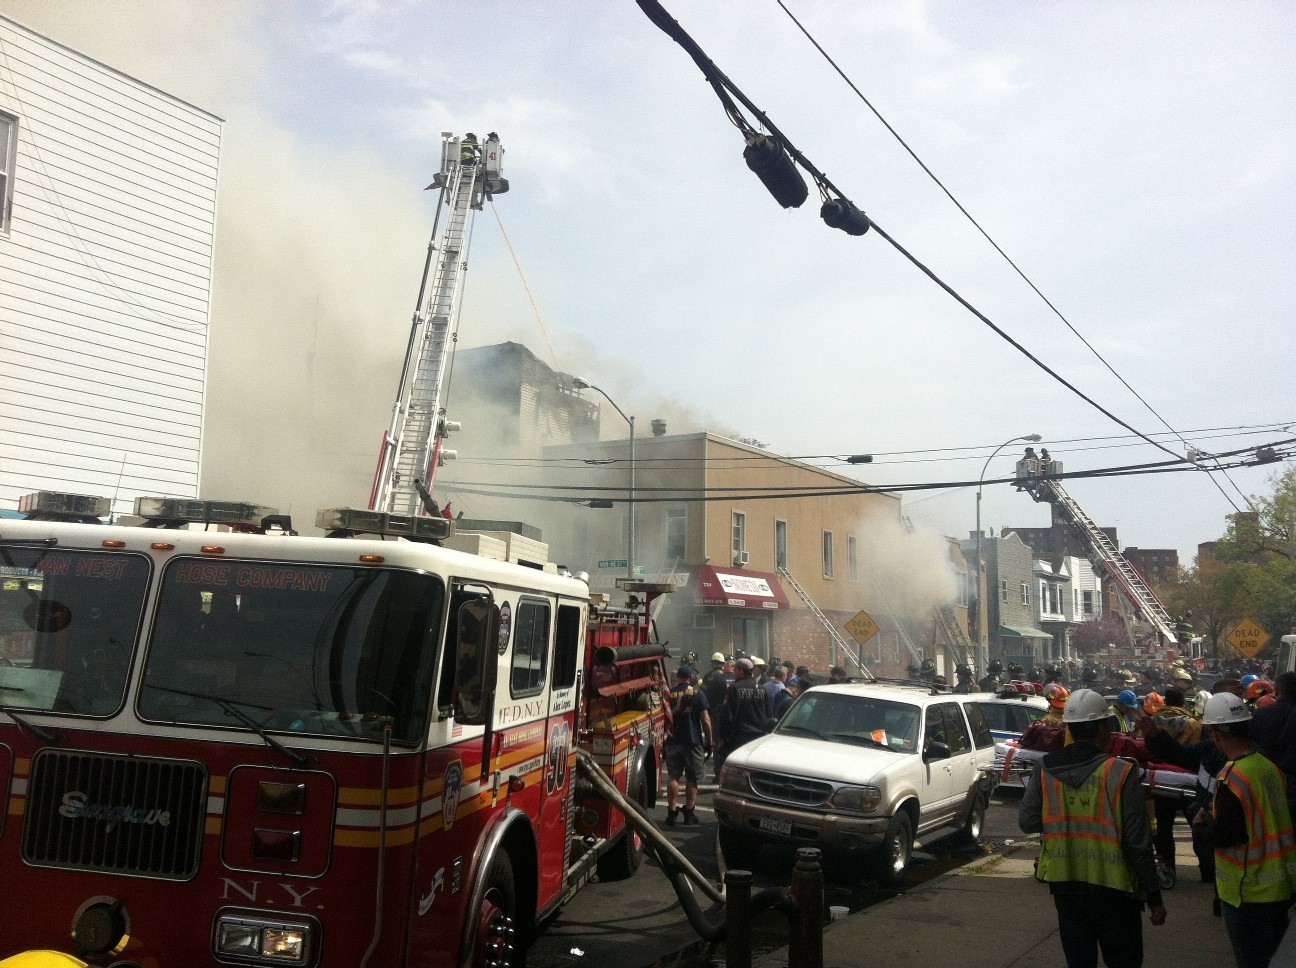 At the scene of the fire.